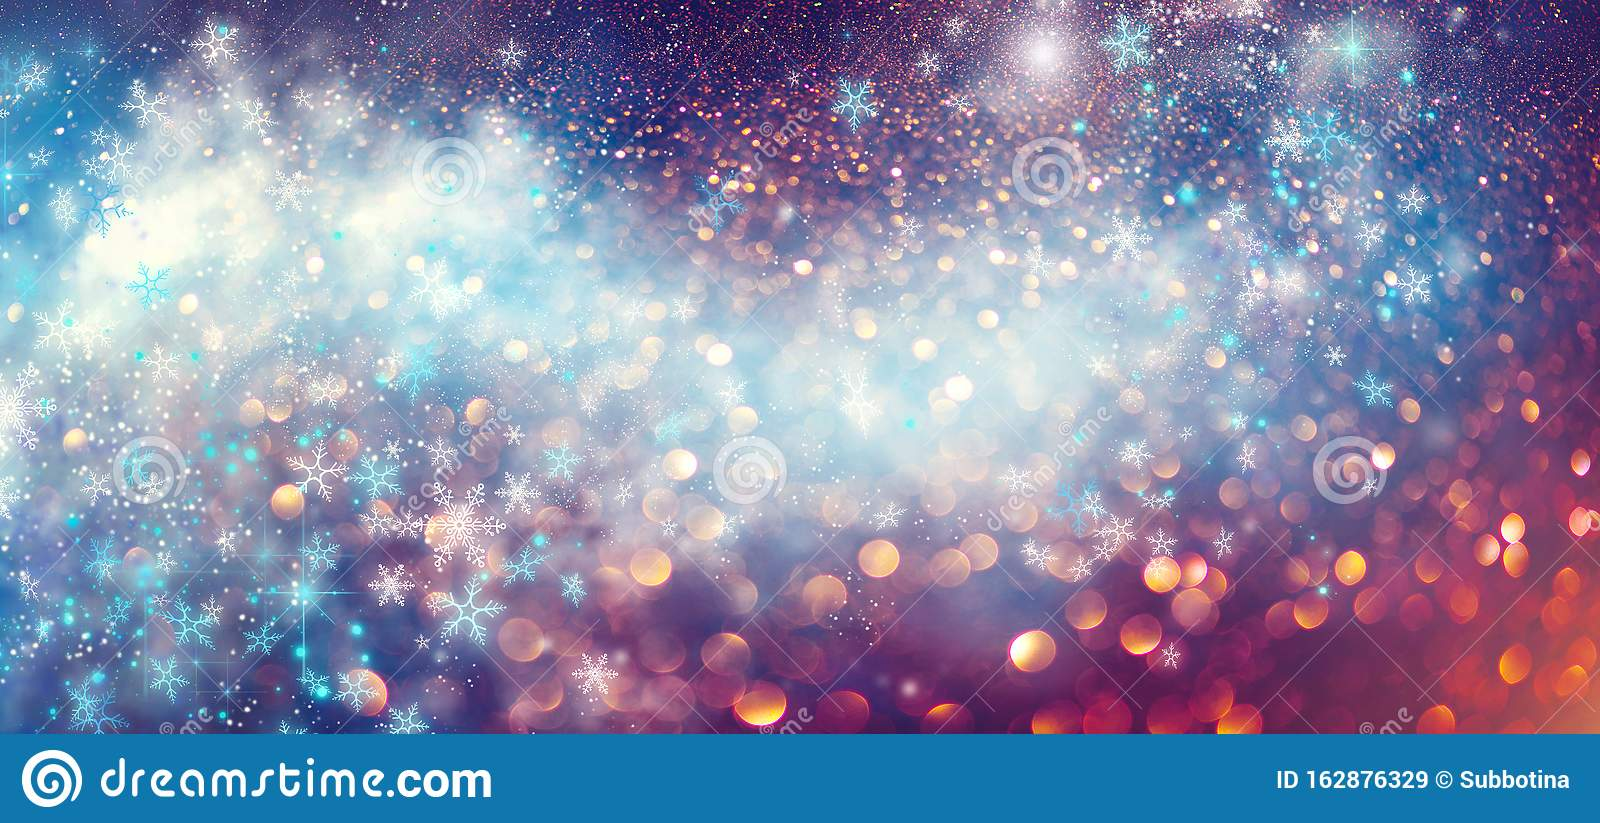 Christmas and New Year glittering winter snow flakes swirl bokeh background, backdrop with sparkling blue stars, holiday garland